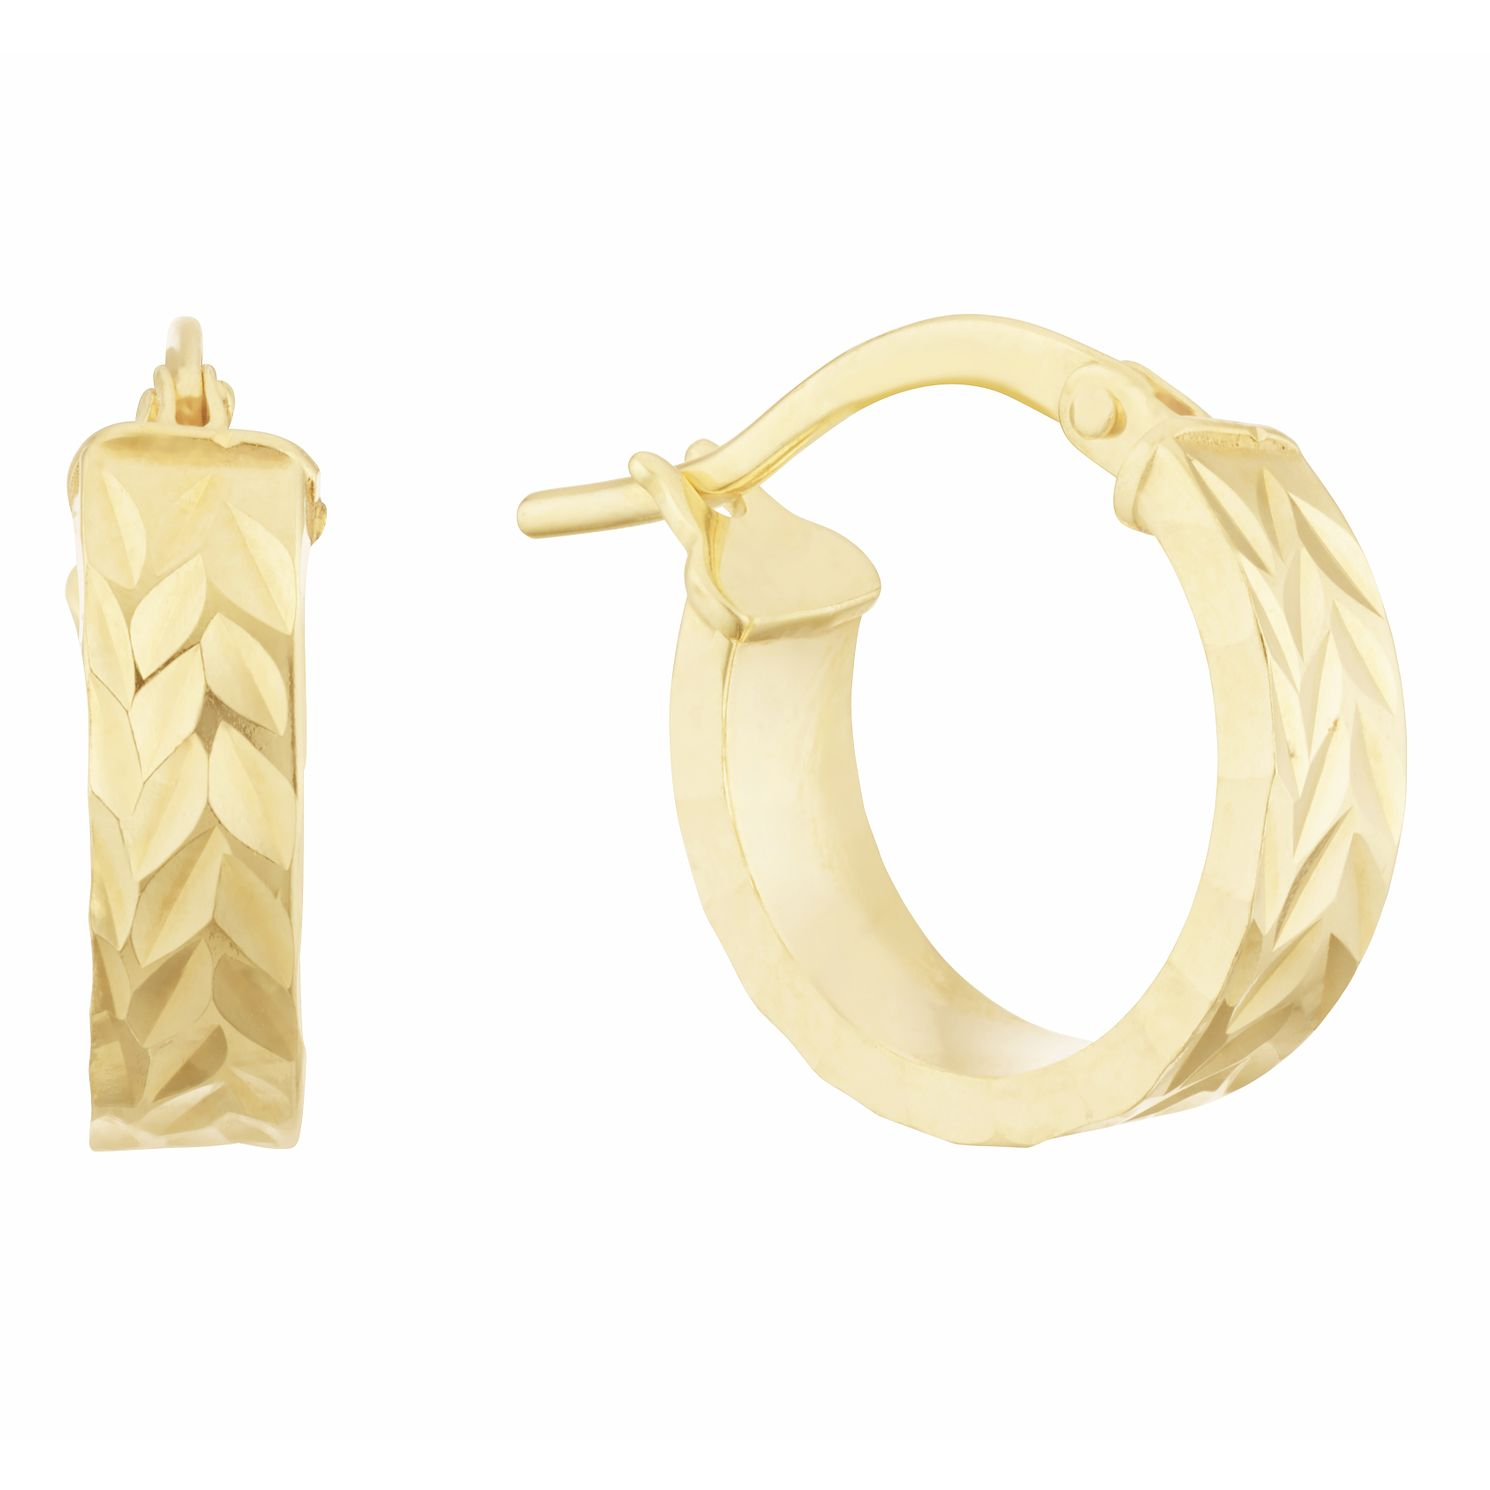 Together Silver & 9ct Bonded Gold Diamond Cut Hoop Earrings - Product number 3157369